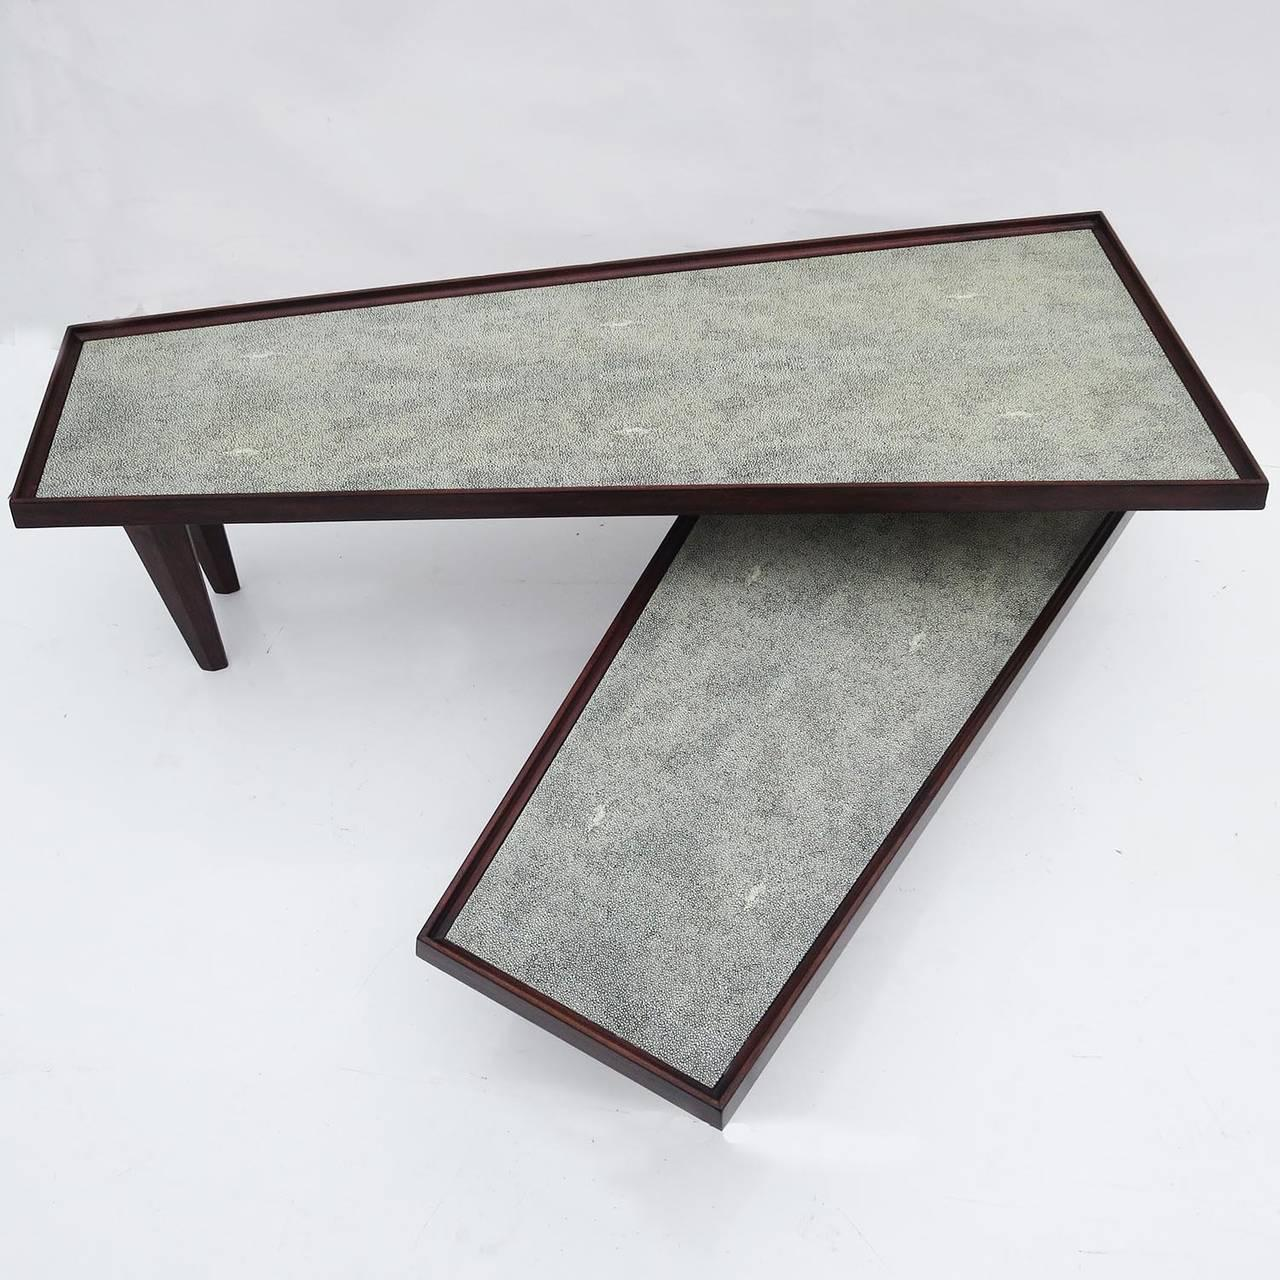 Modern Coffee Table Swing Out Level Faux Shagreen   Image 2 Of 7